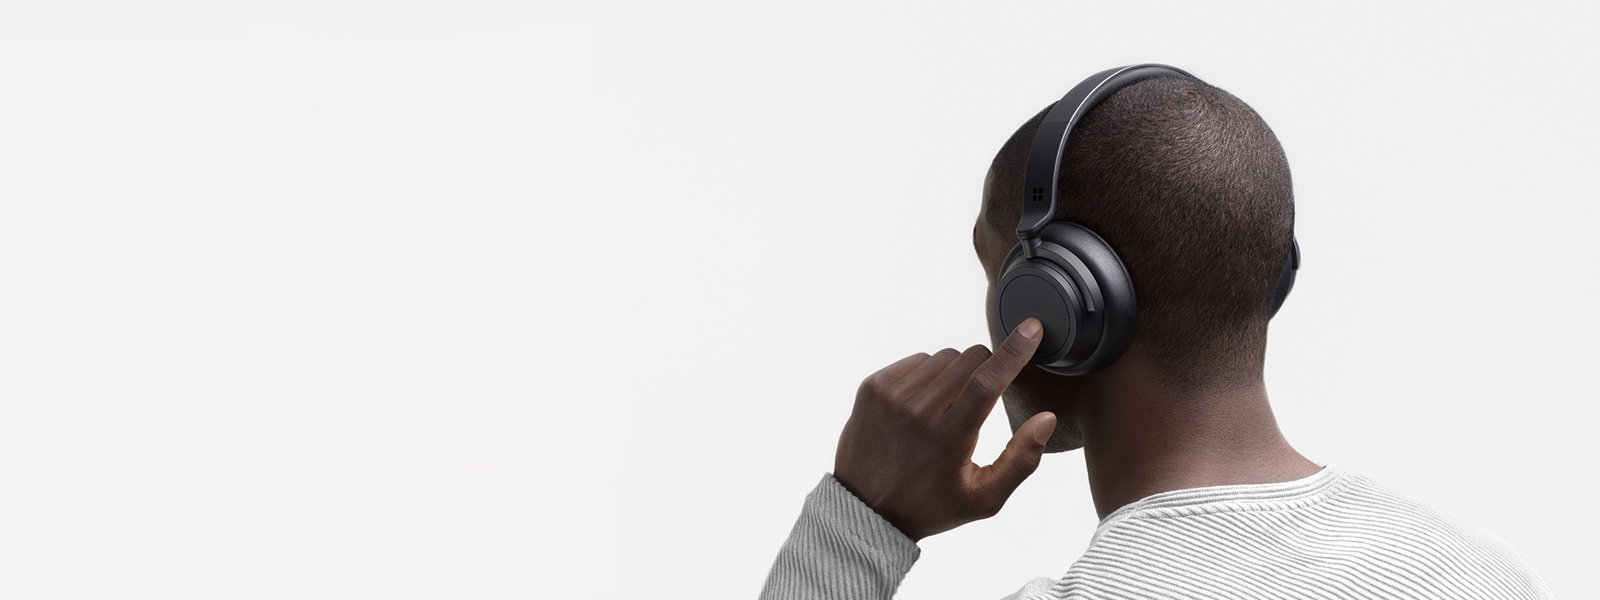 Surface Headphones 2 and earbuds